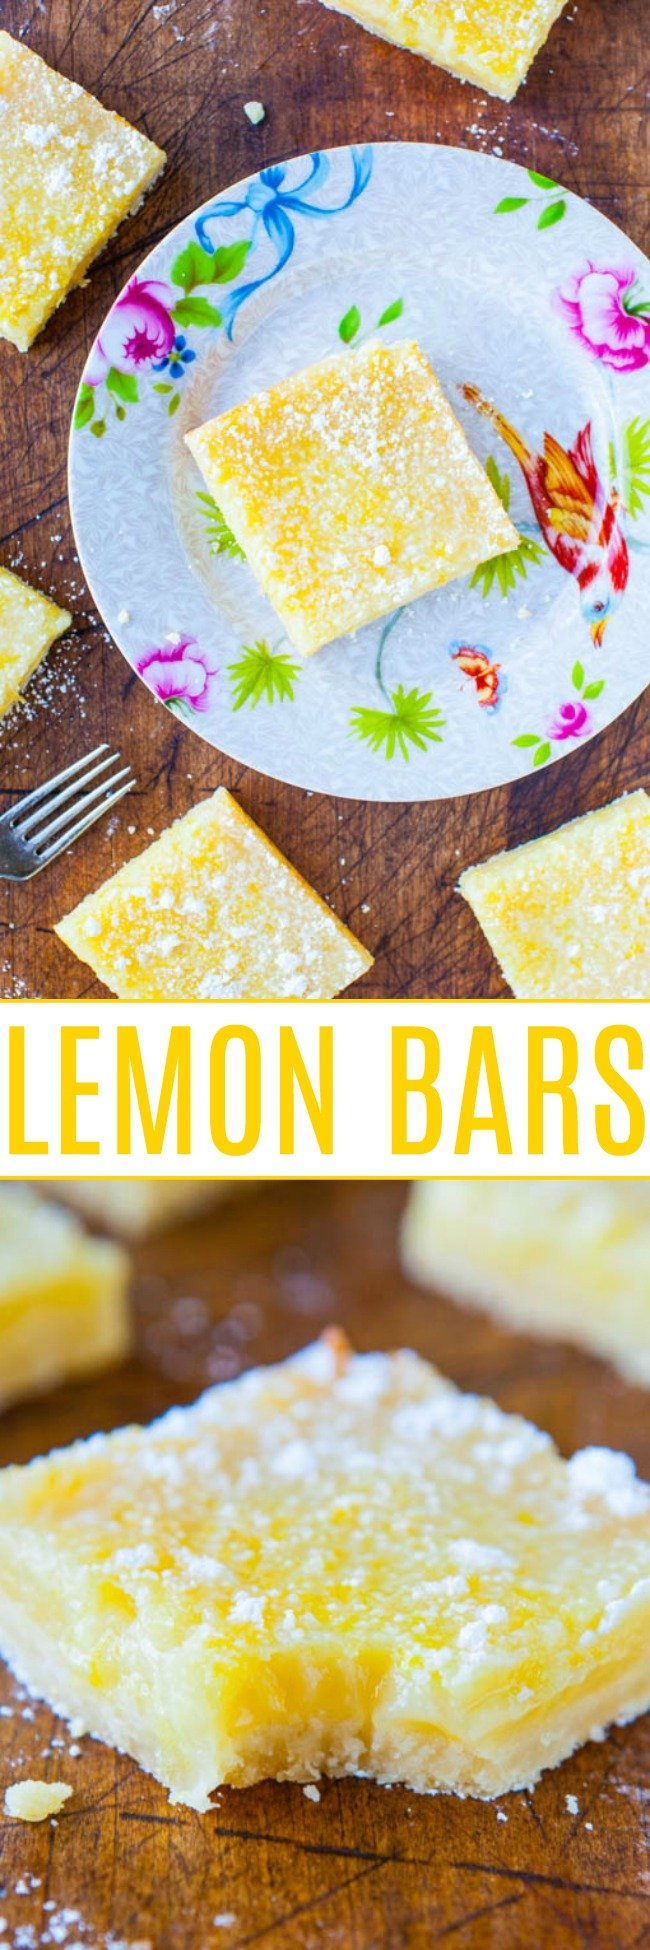 The BEST Lemon Bars — Classic lemon bars that pack a punch of big time lemon flavor, without being too tart or too sweet!